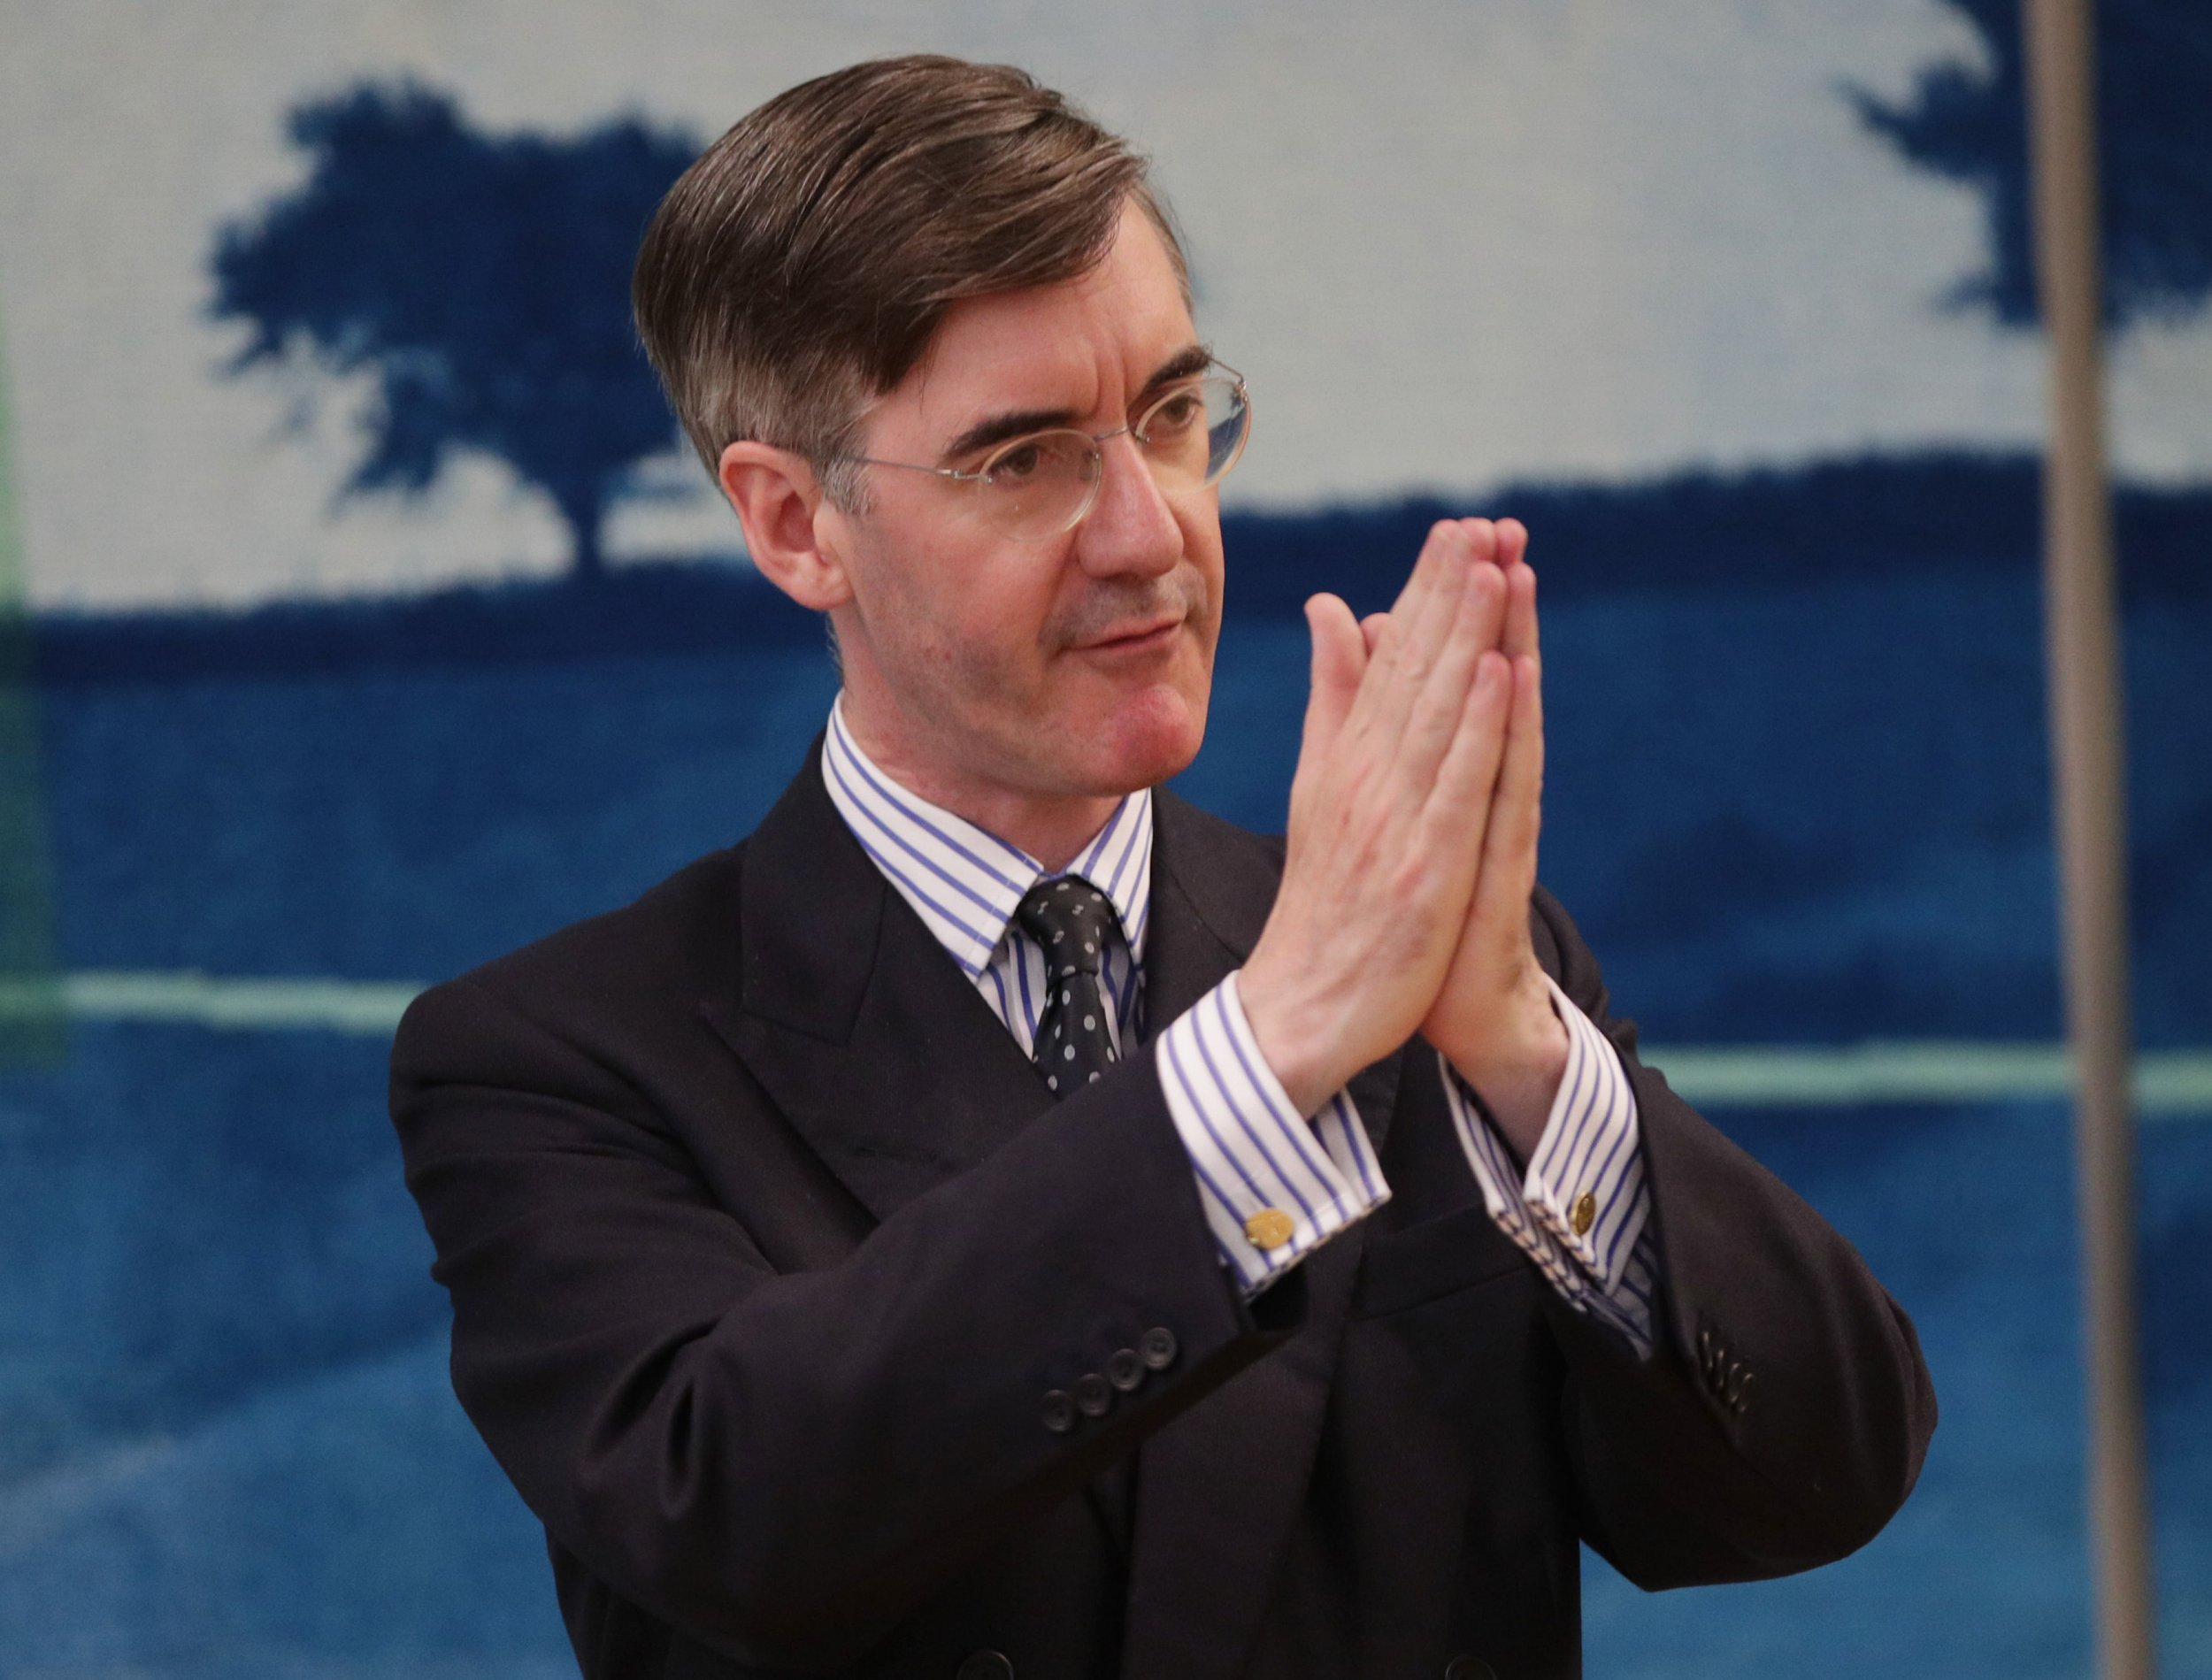 Jacob Rees-Mogg's controversial views on abortion, gay marriage, zero-hour contracts, Donald Trump and more